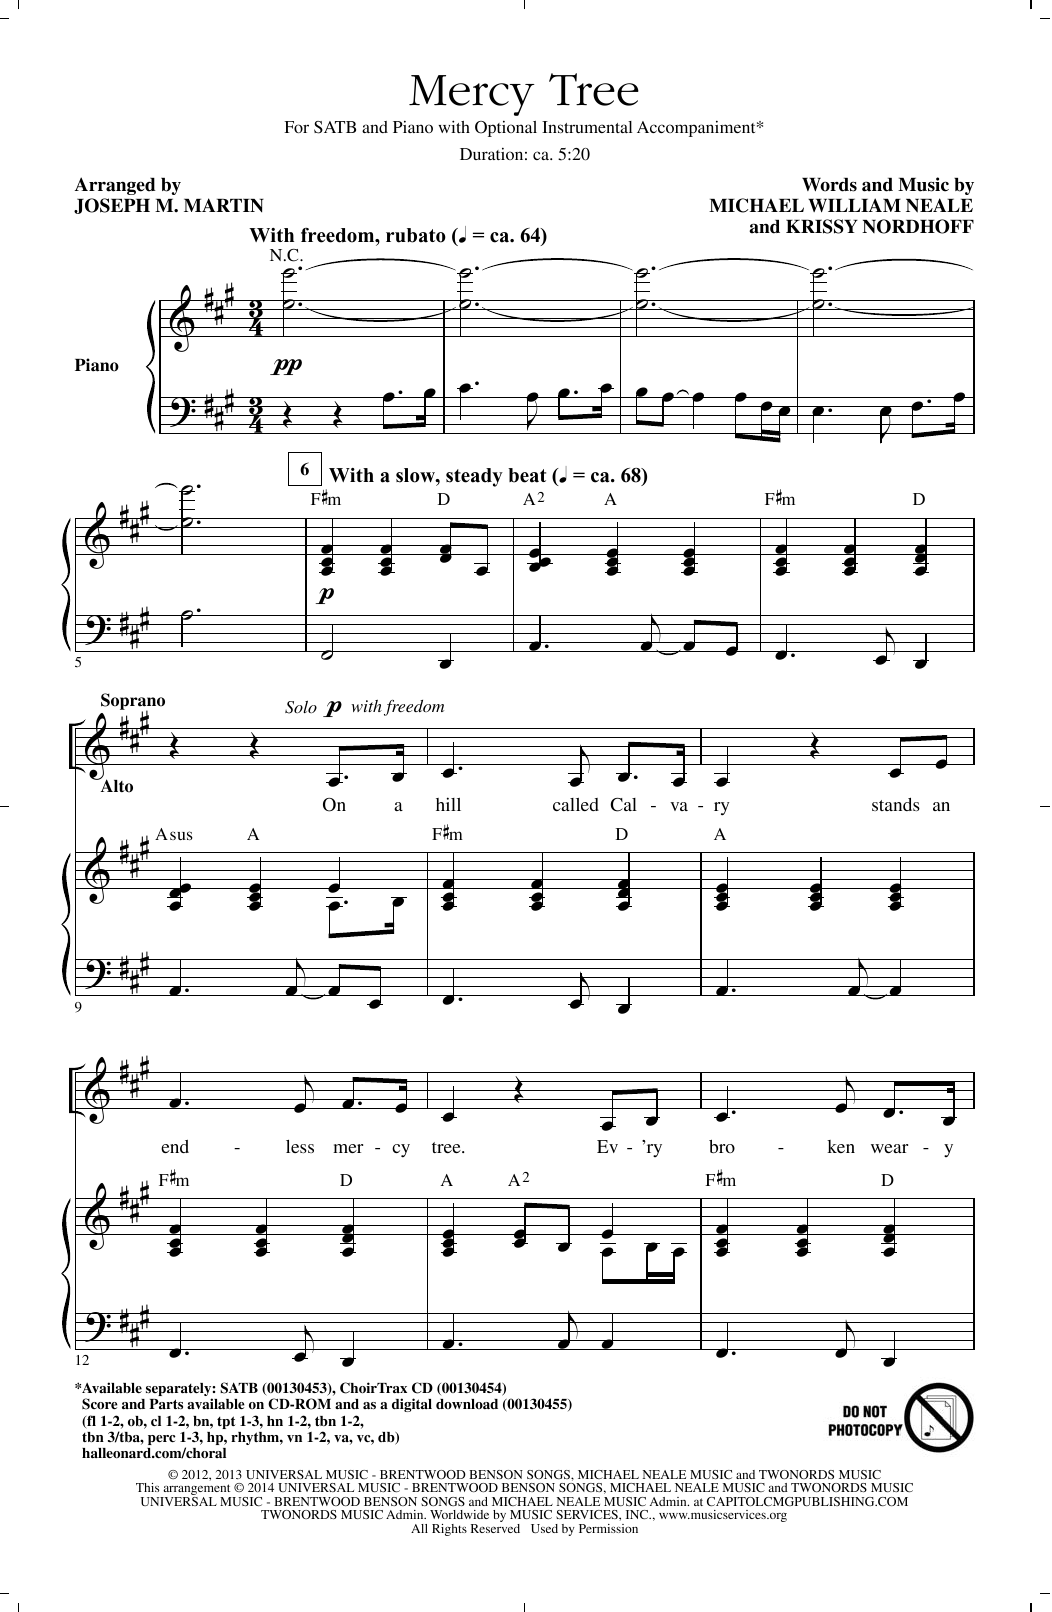 Mercy Tree (SATB Choir)